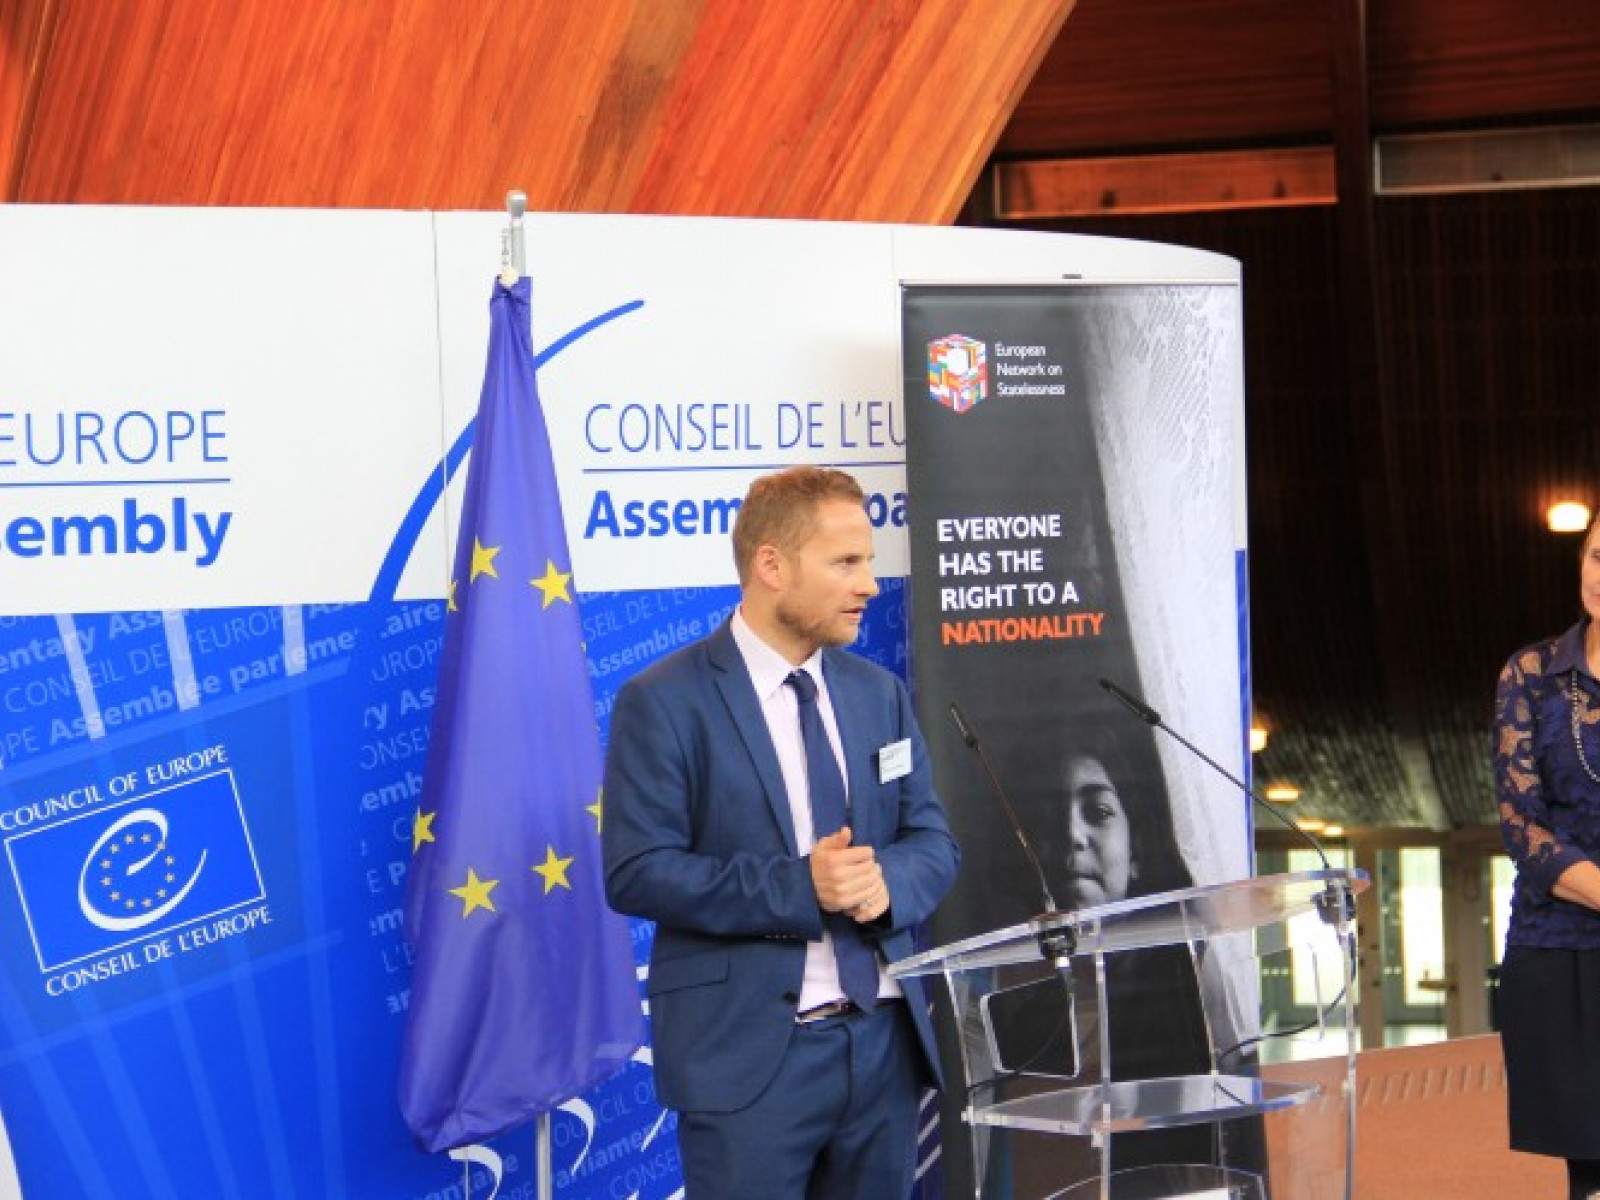 ENS Director speaking at an event at the Parliamentary Assembly of the Council of Europe